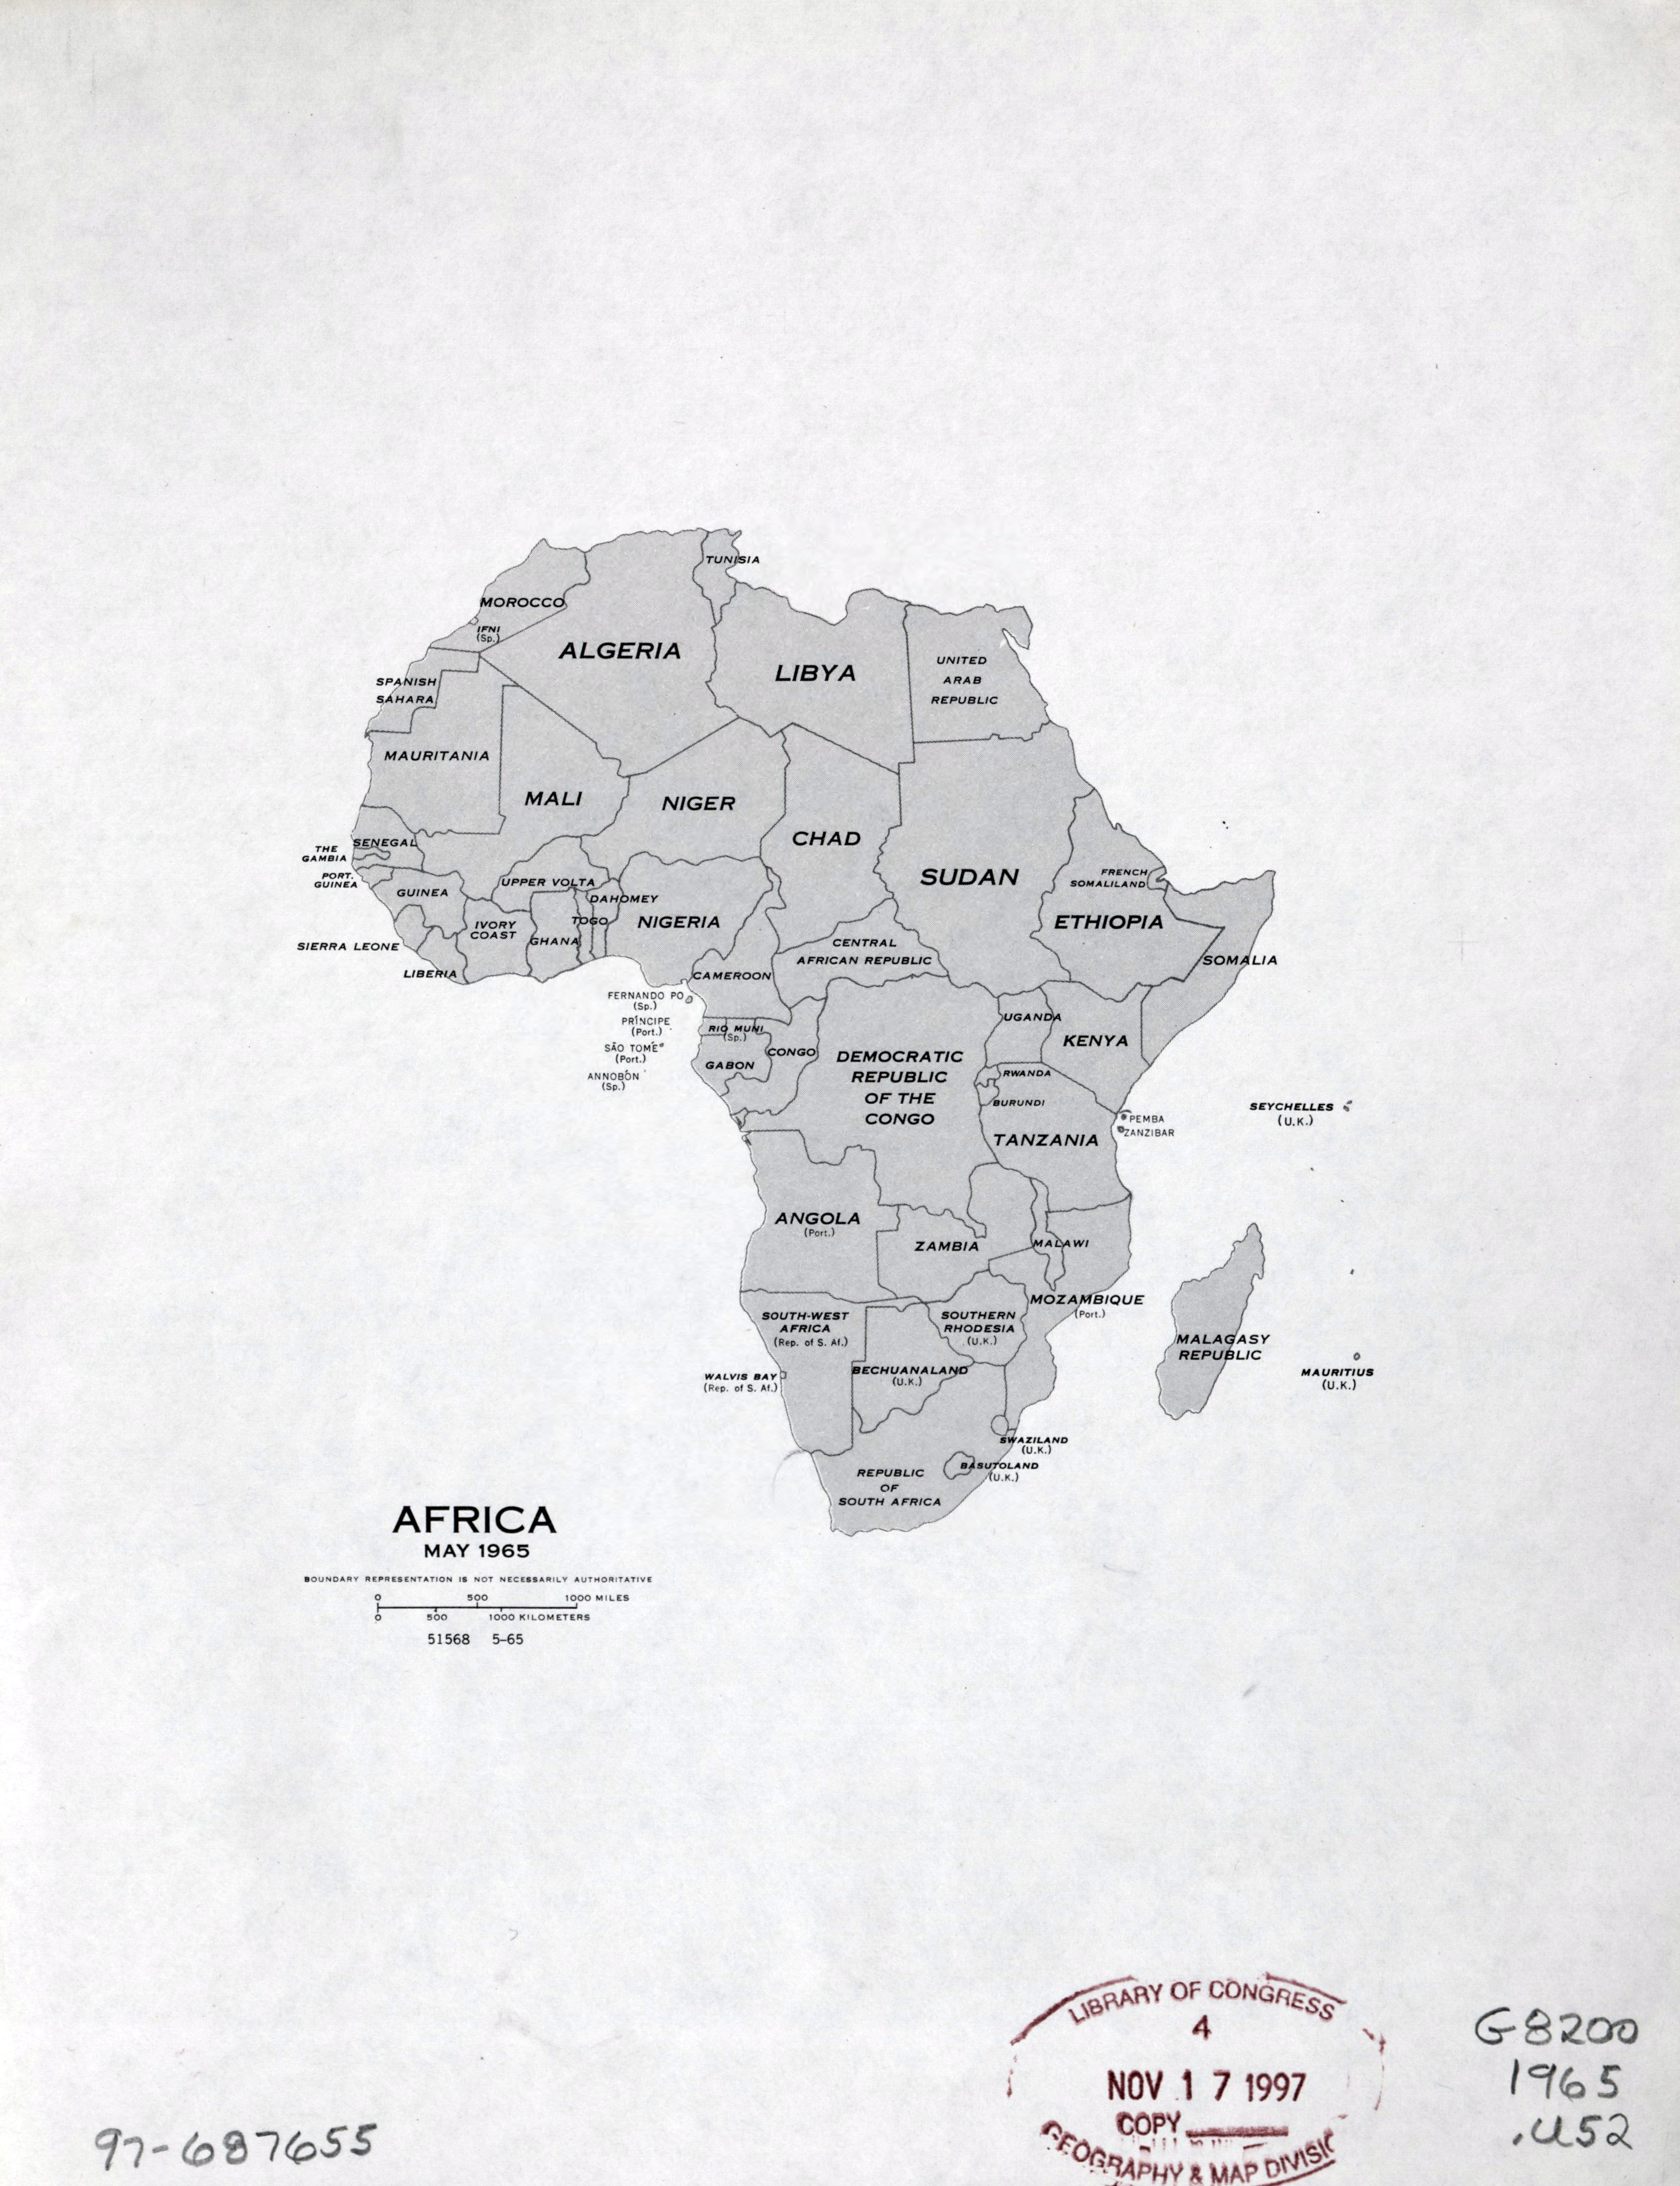 Large Detailed Political Map Of Africa With Names Of Countries - Africa political map without names